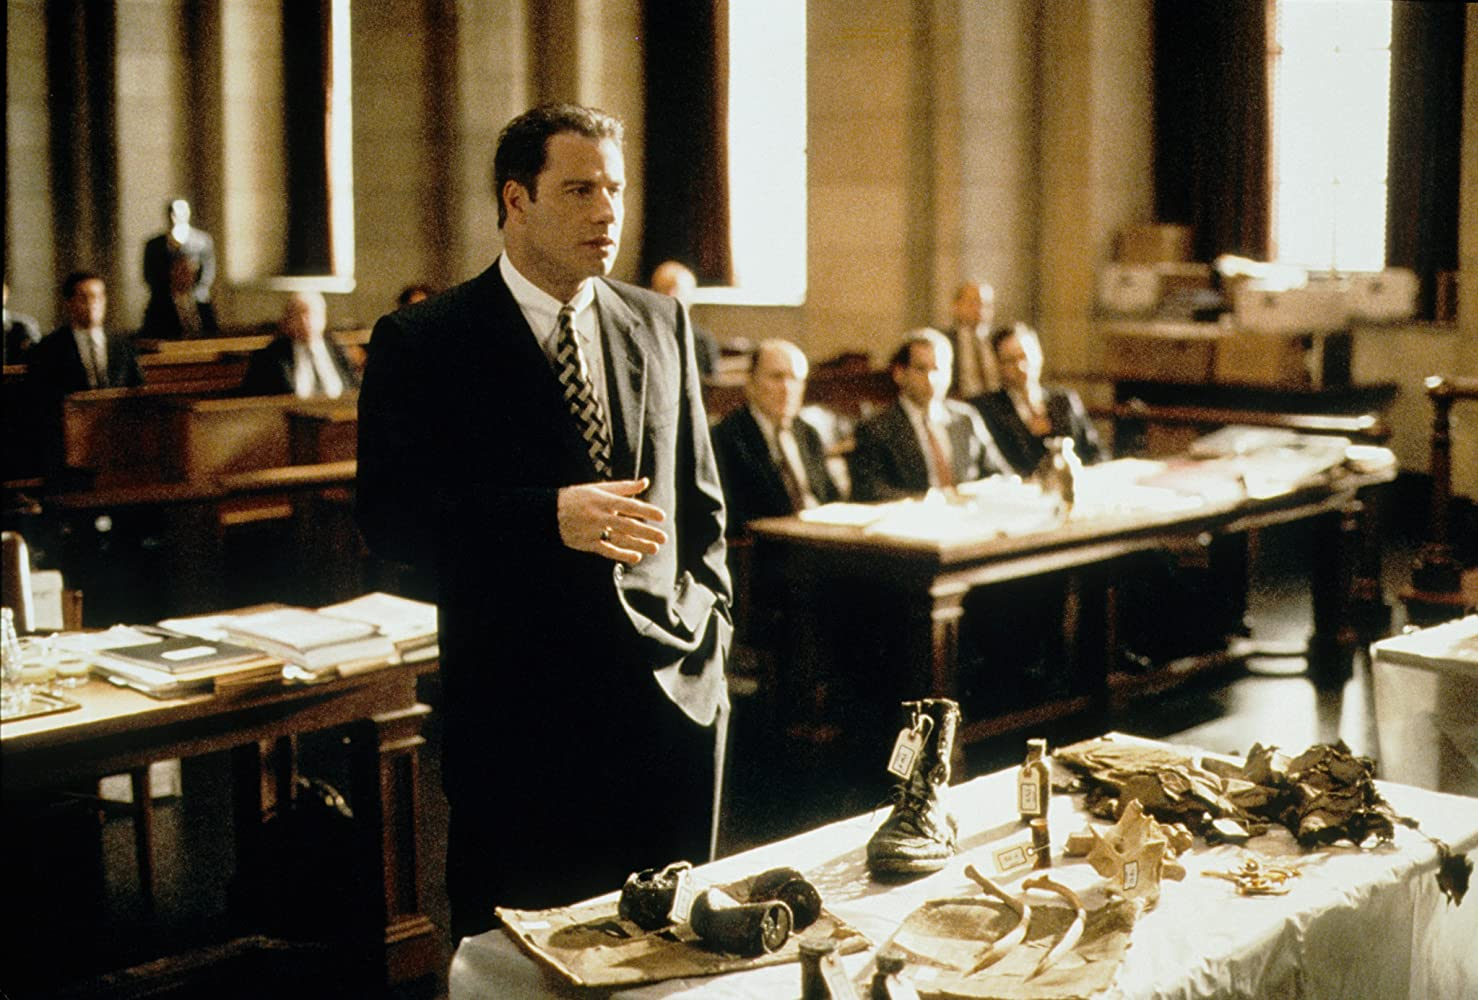 A Civil Action John Travolta in court scene